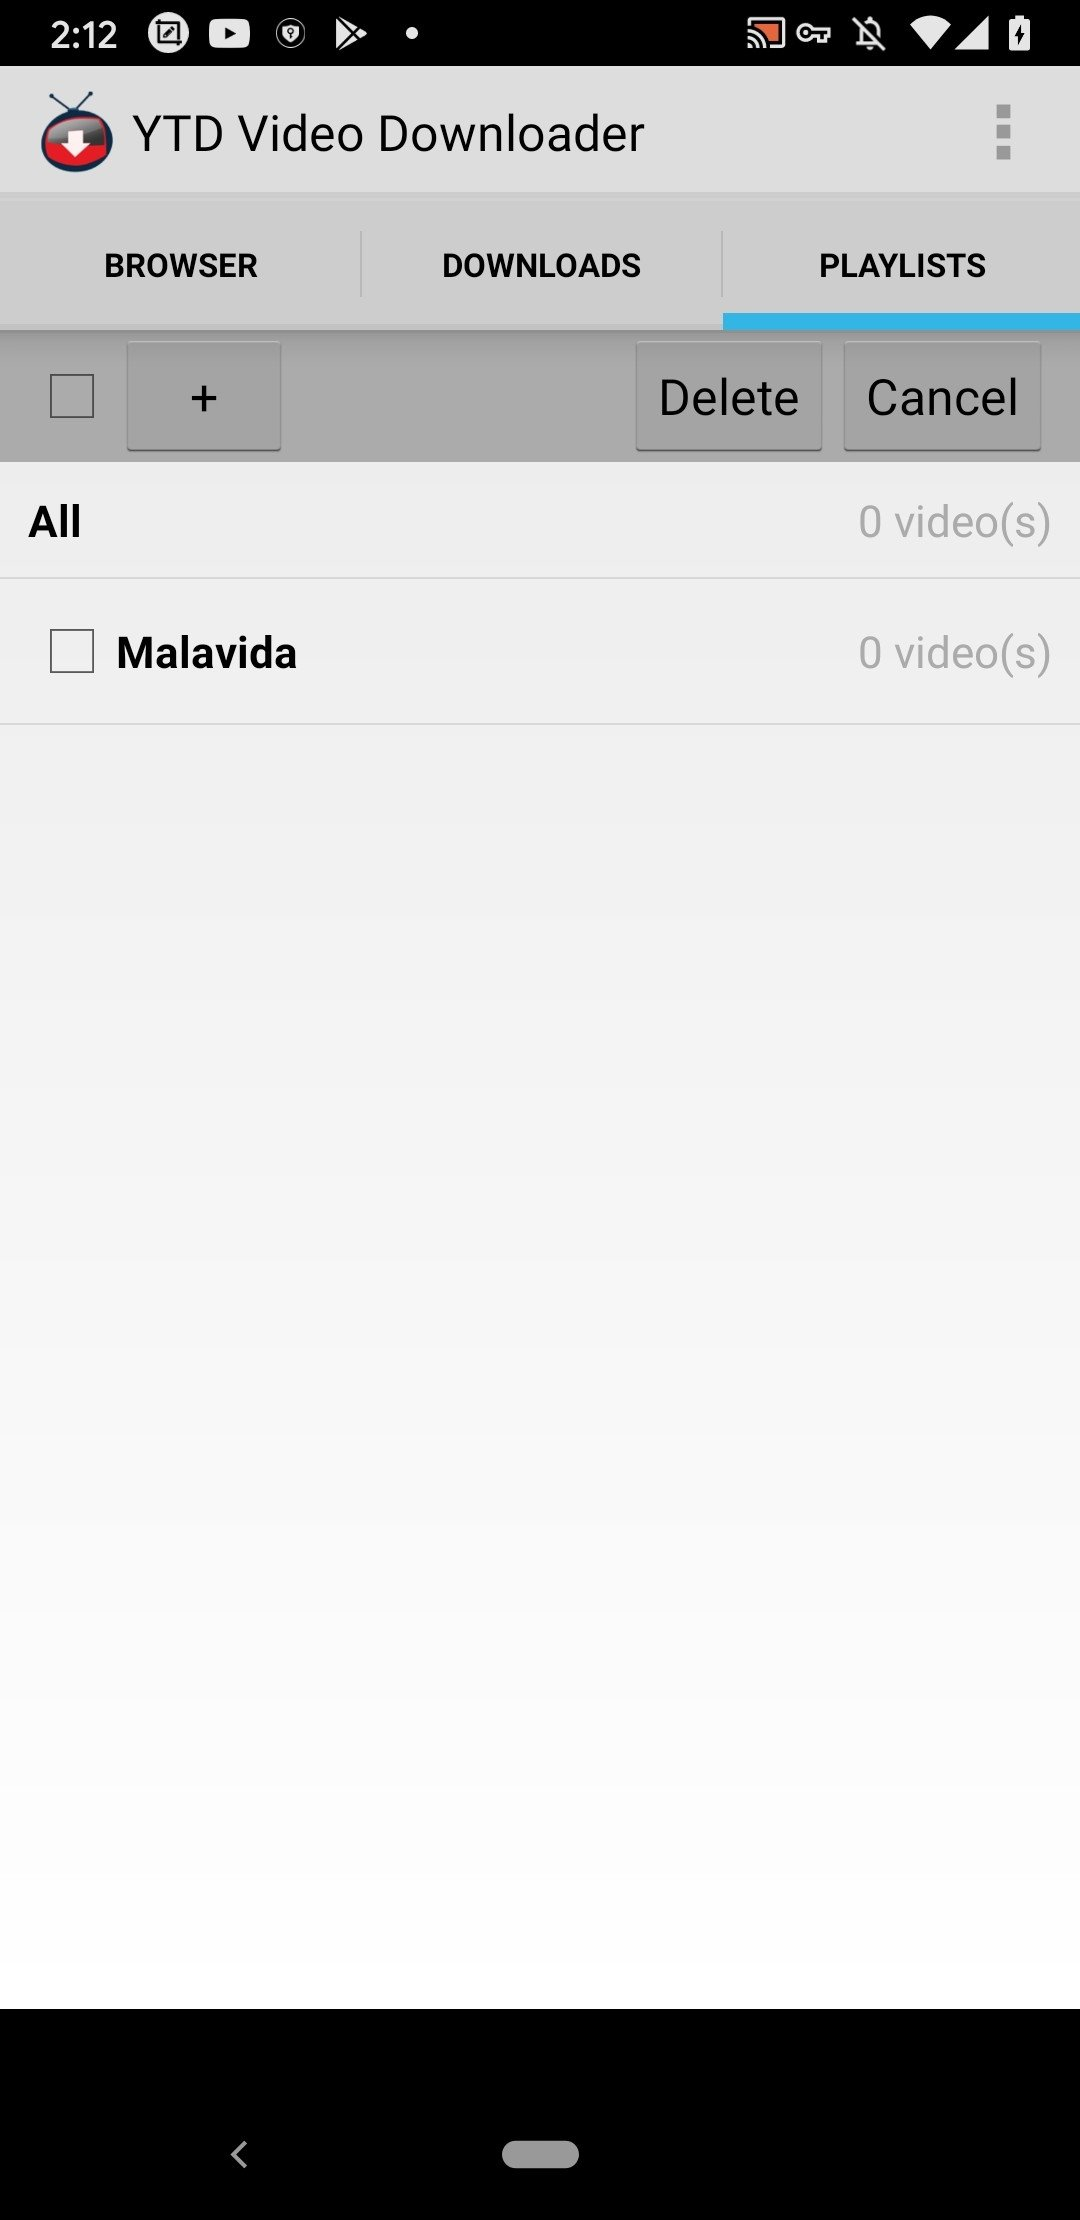 Youtube downloader app for android free download.